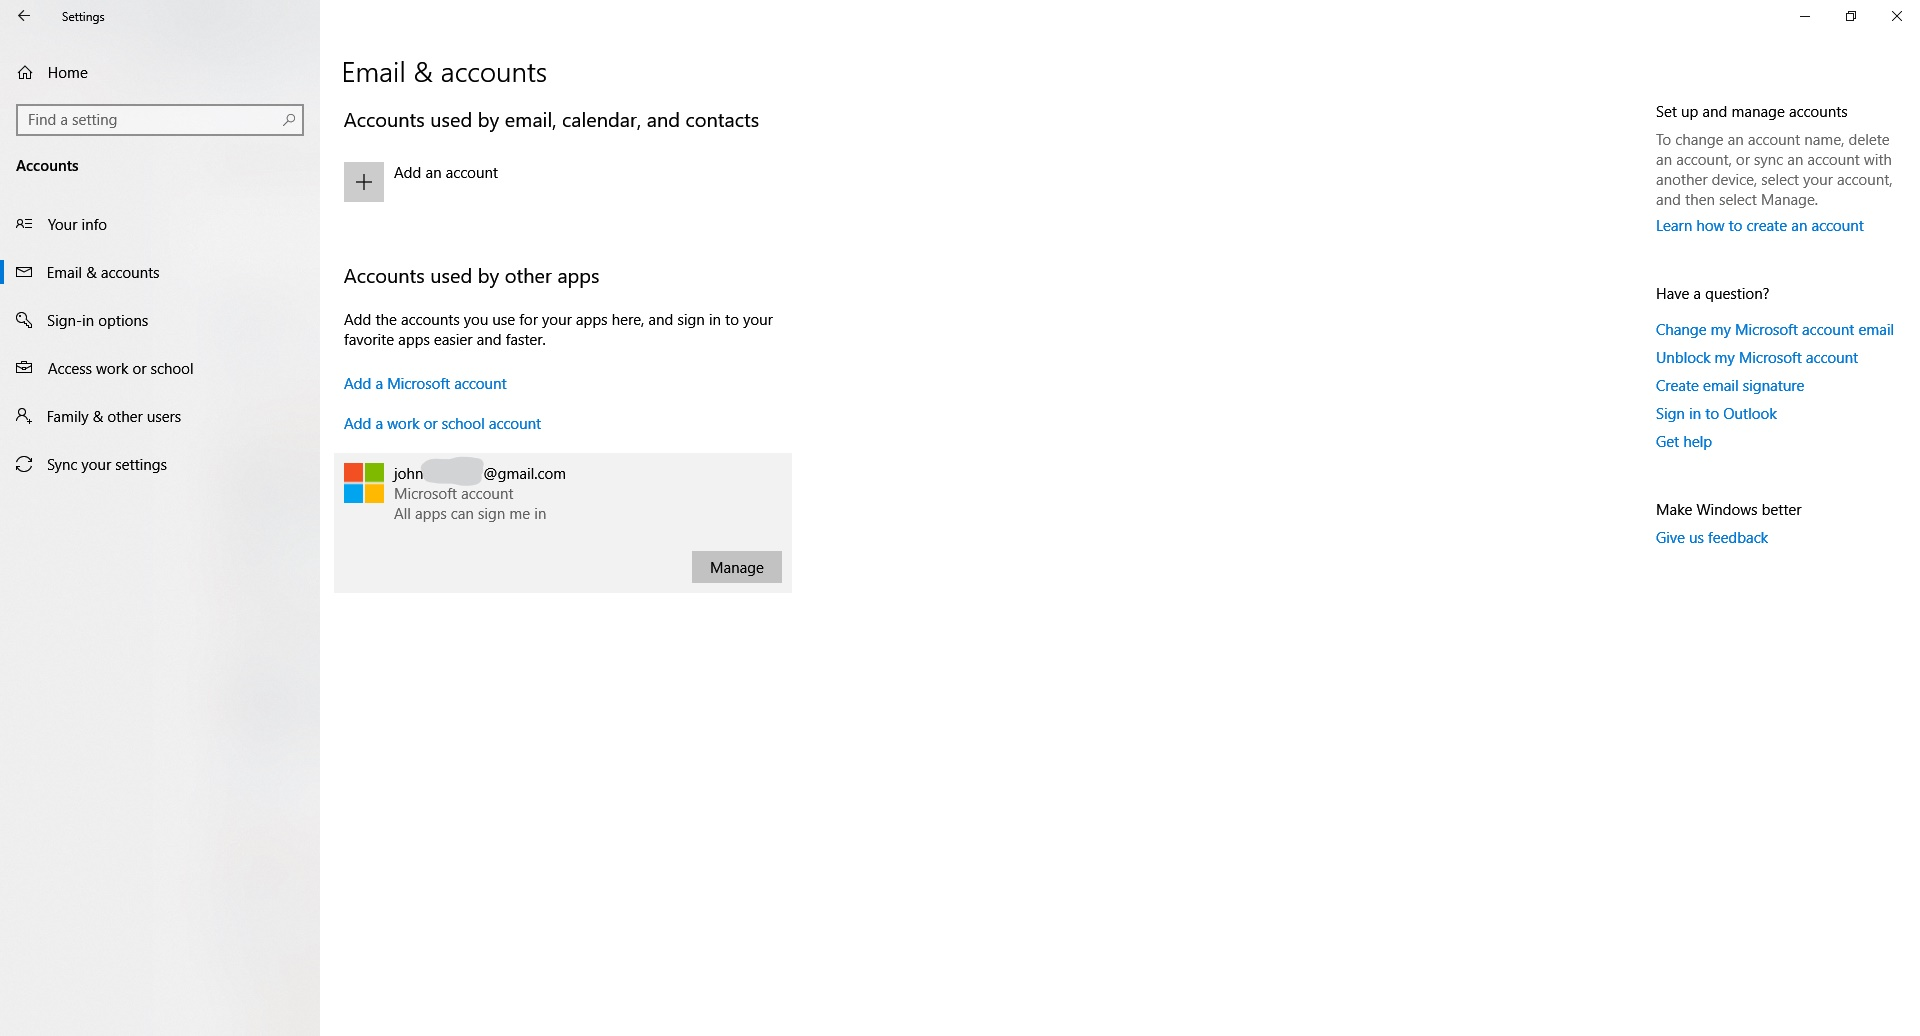 Changing from a local account to a Microsoft Account b655dcc2-bd40-45ce-ba97-d166ffbf3858?upload=true.jpg